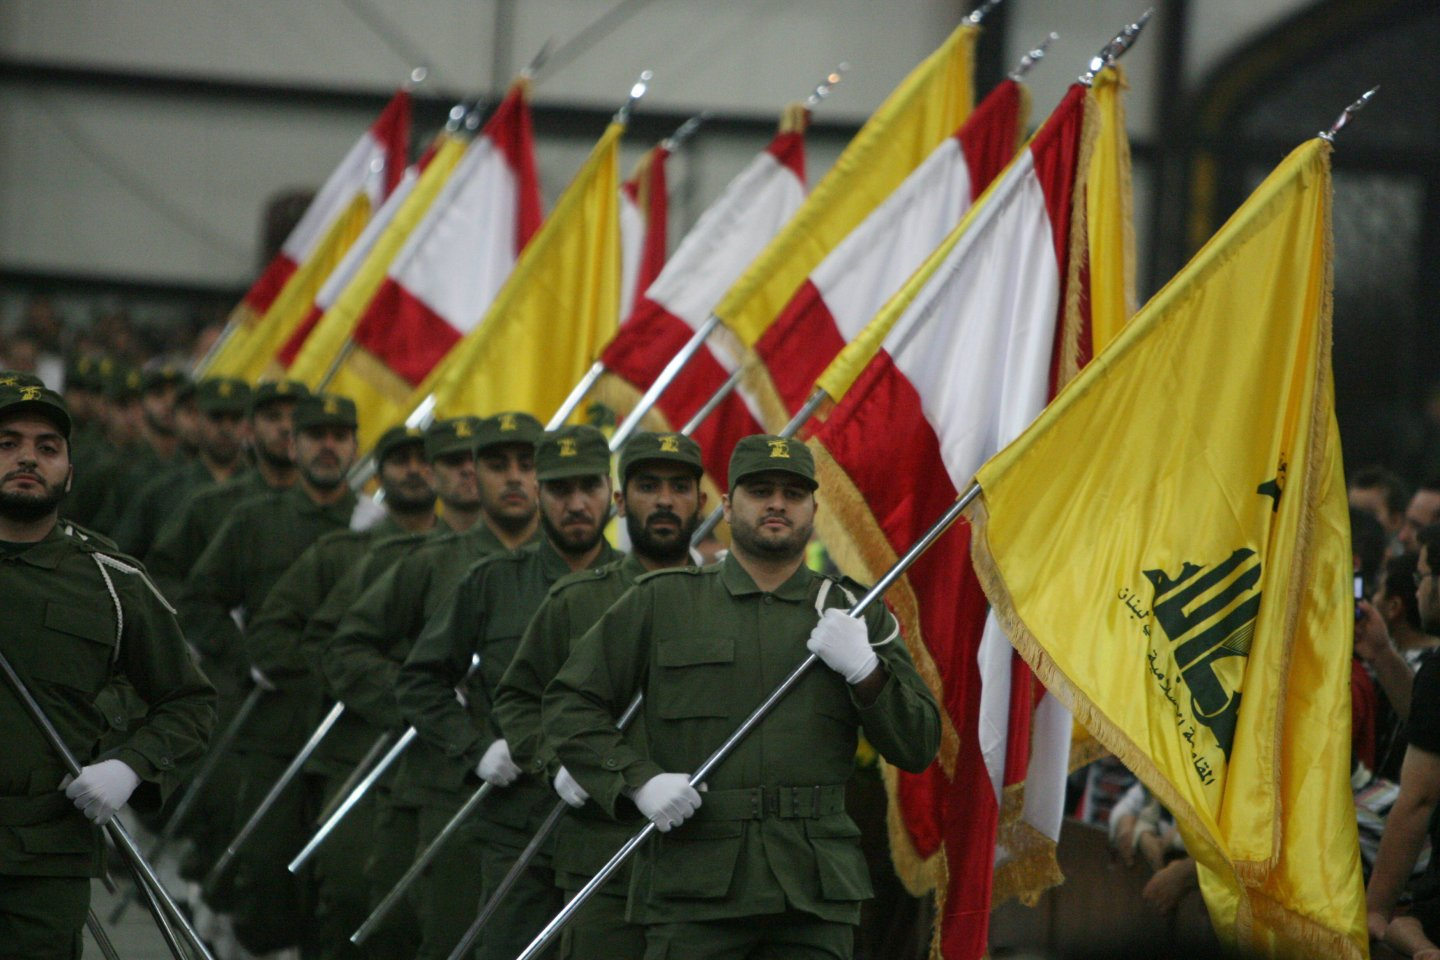 Hezbollah fighters at a ceremony.